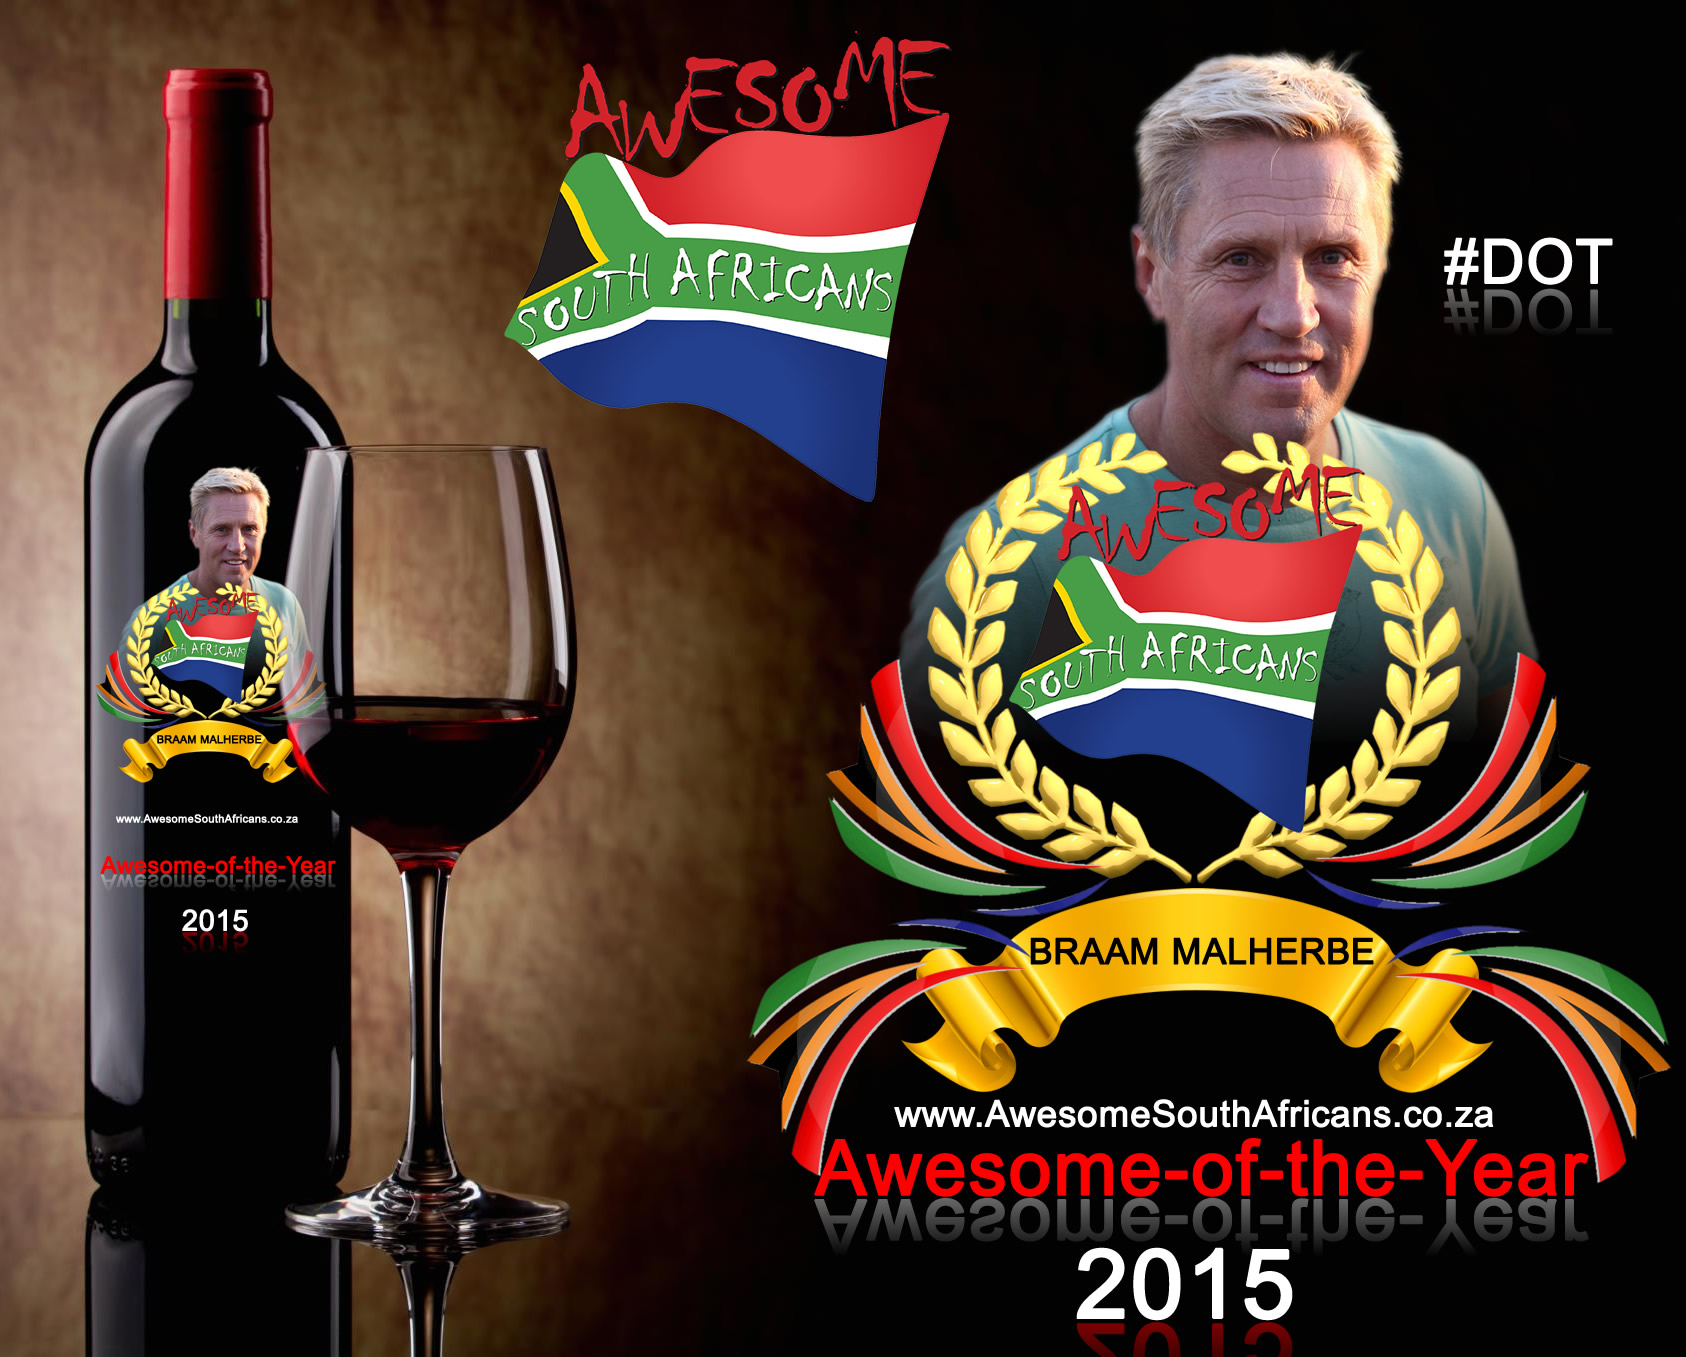 BraamMalherbe Awesome of the Year 2015